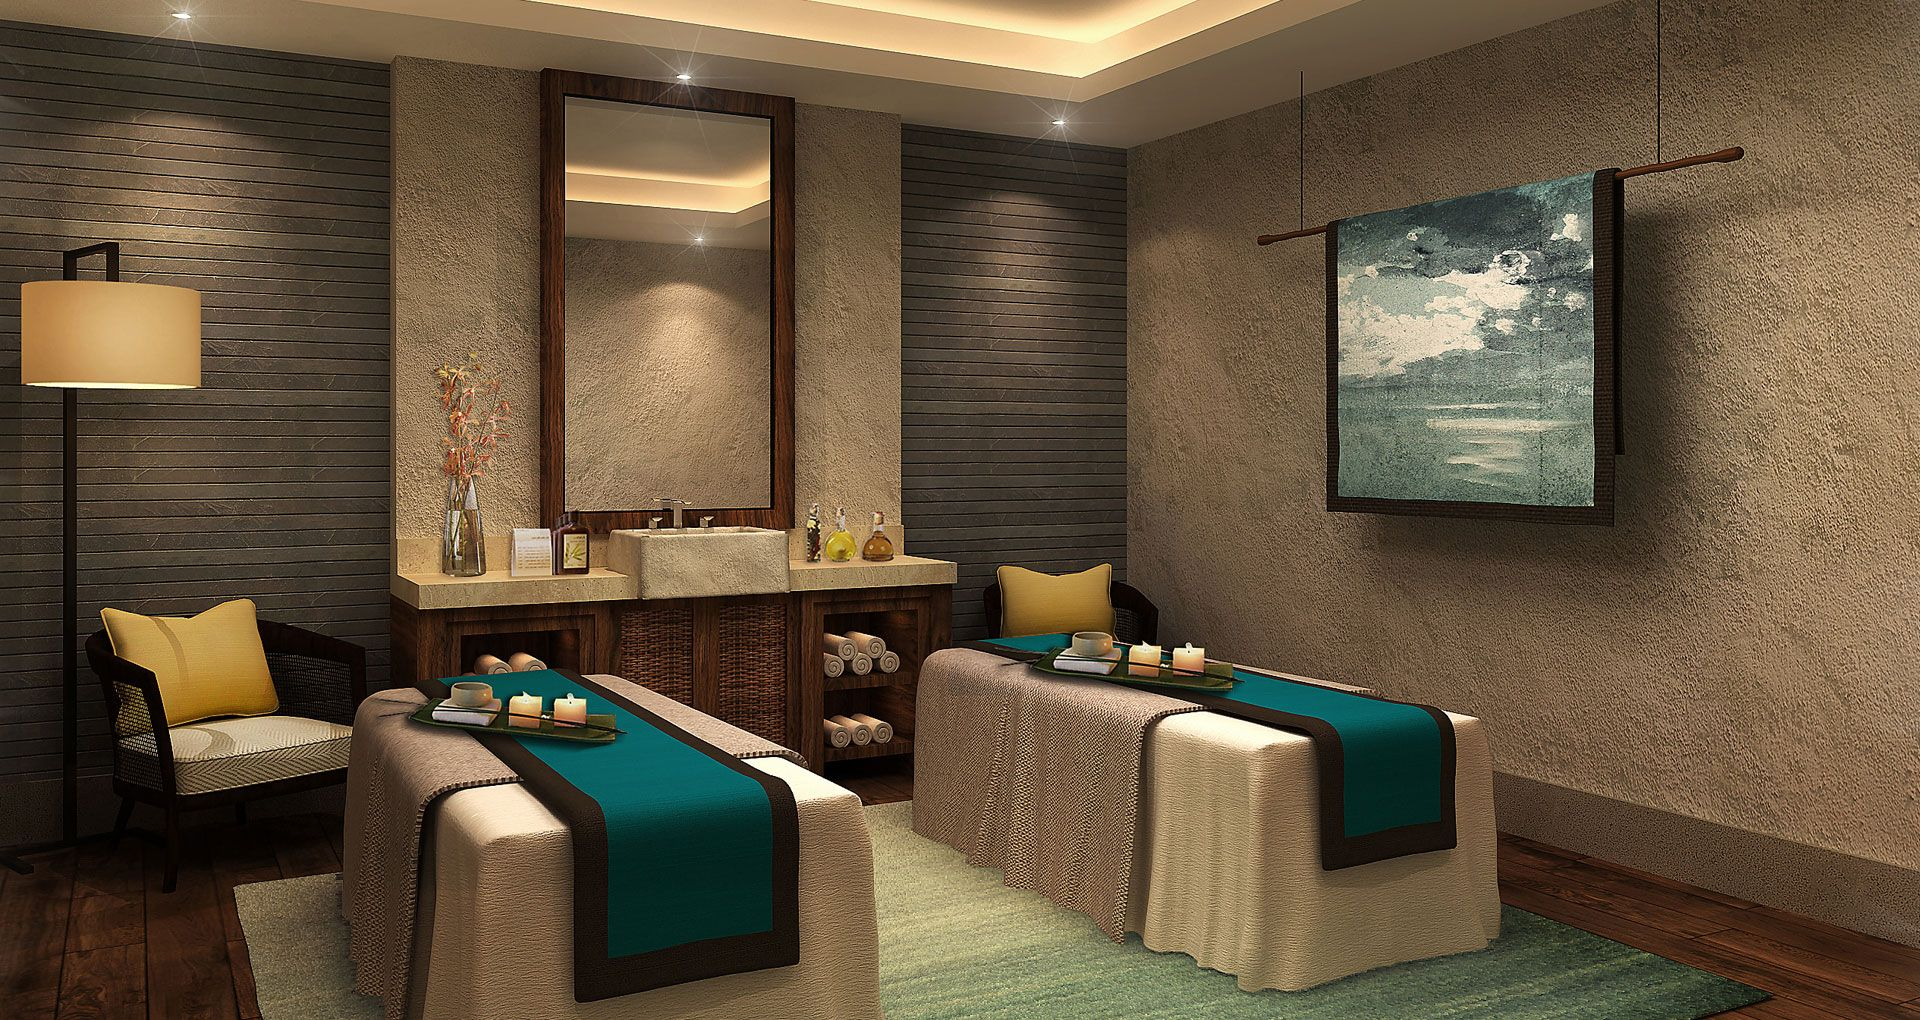 zhangzhou half moon hill hot spring resort spa interior. Black Bedroom Furniture Sets. Home Design Ideas